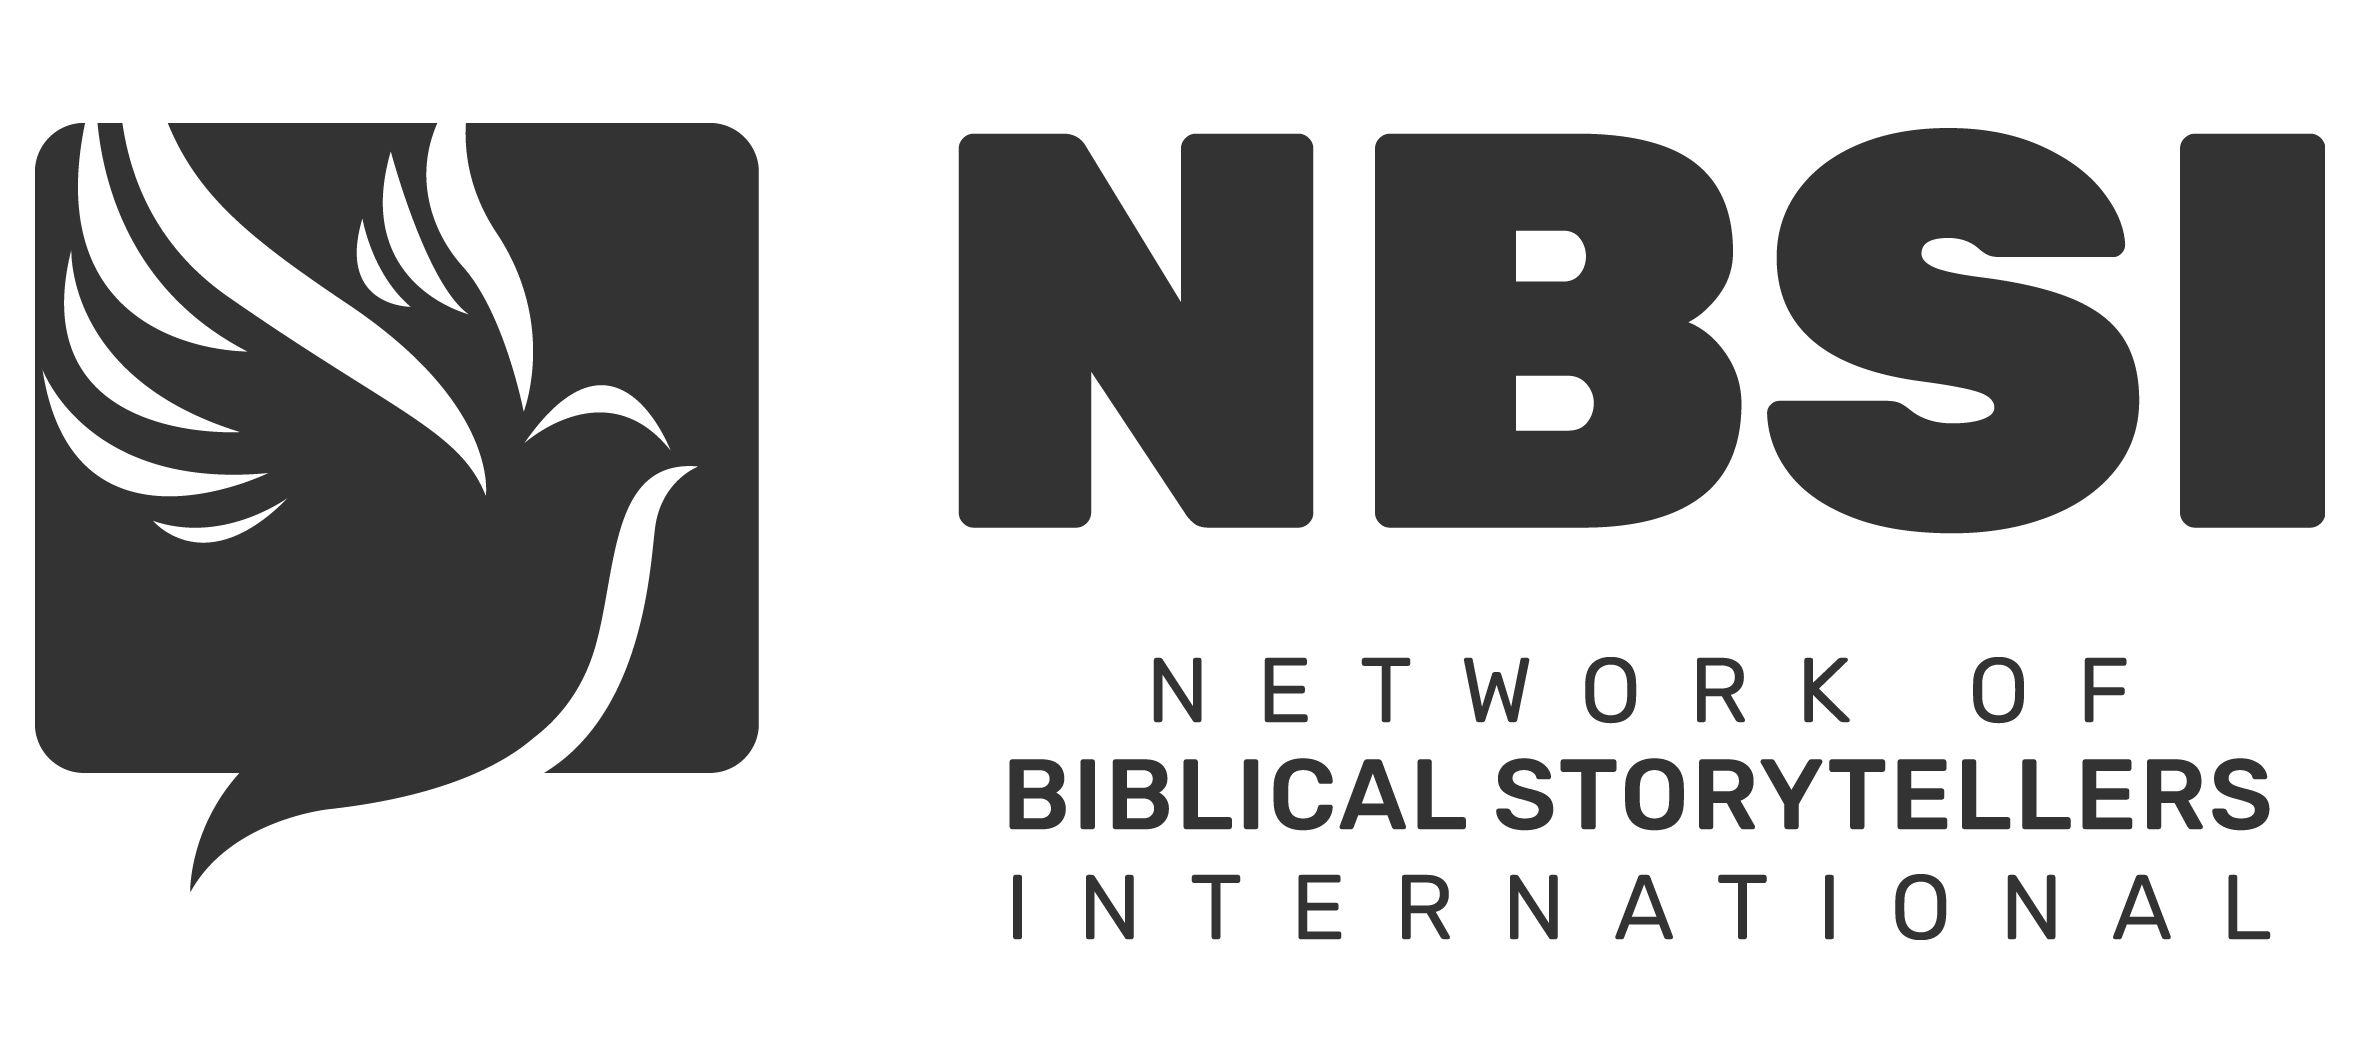 Network of Biblical Storytellers, International